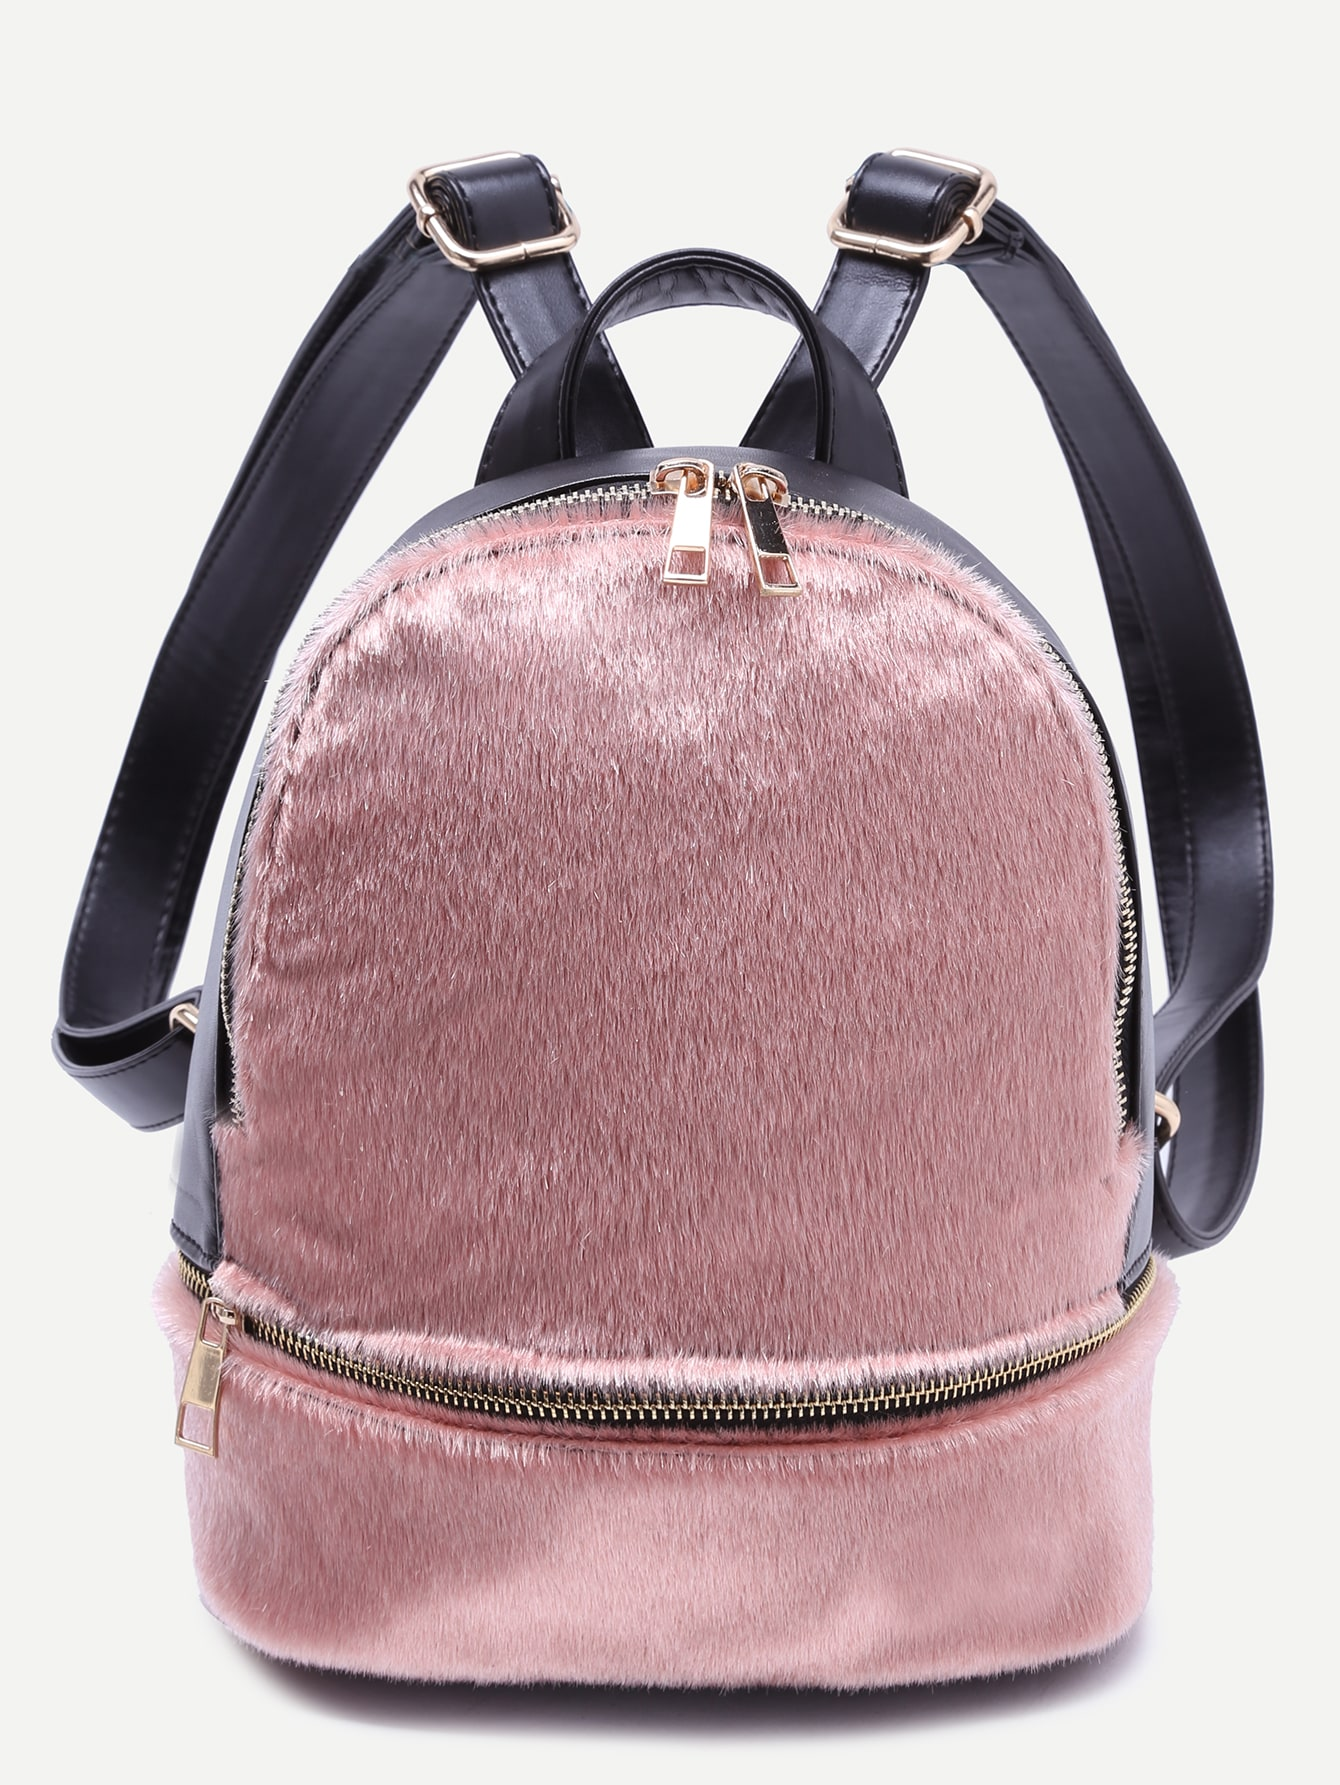 Pink Faux Fur Covered Zip Front BackpackPink Faux Fur Covered Zip Front Backpack<br><br>color: Pink<br>size: None